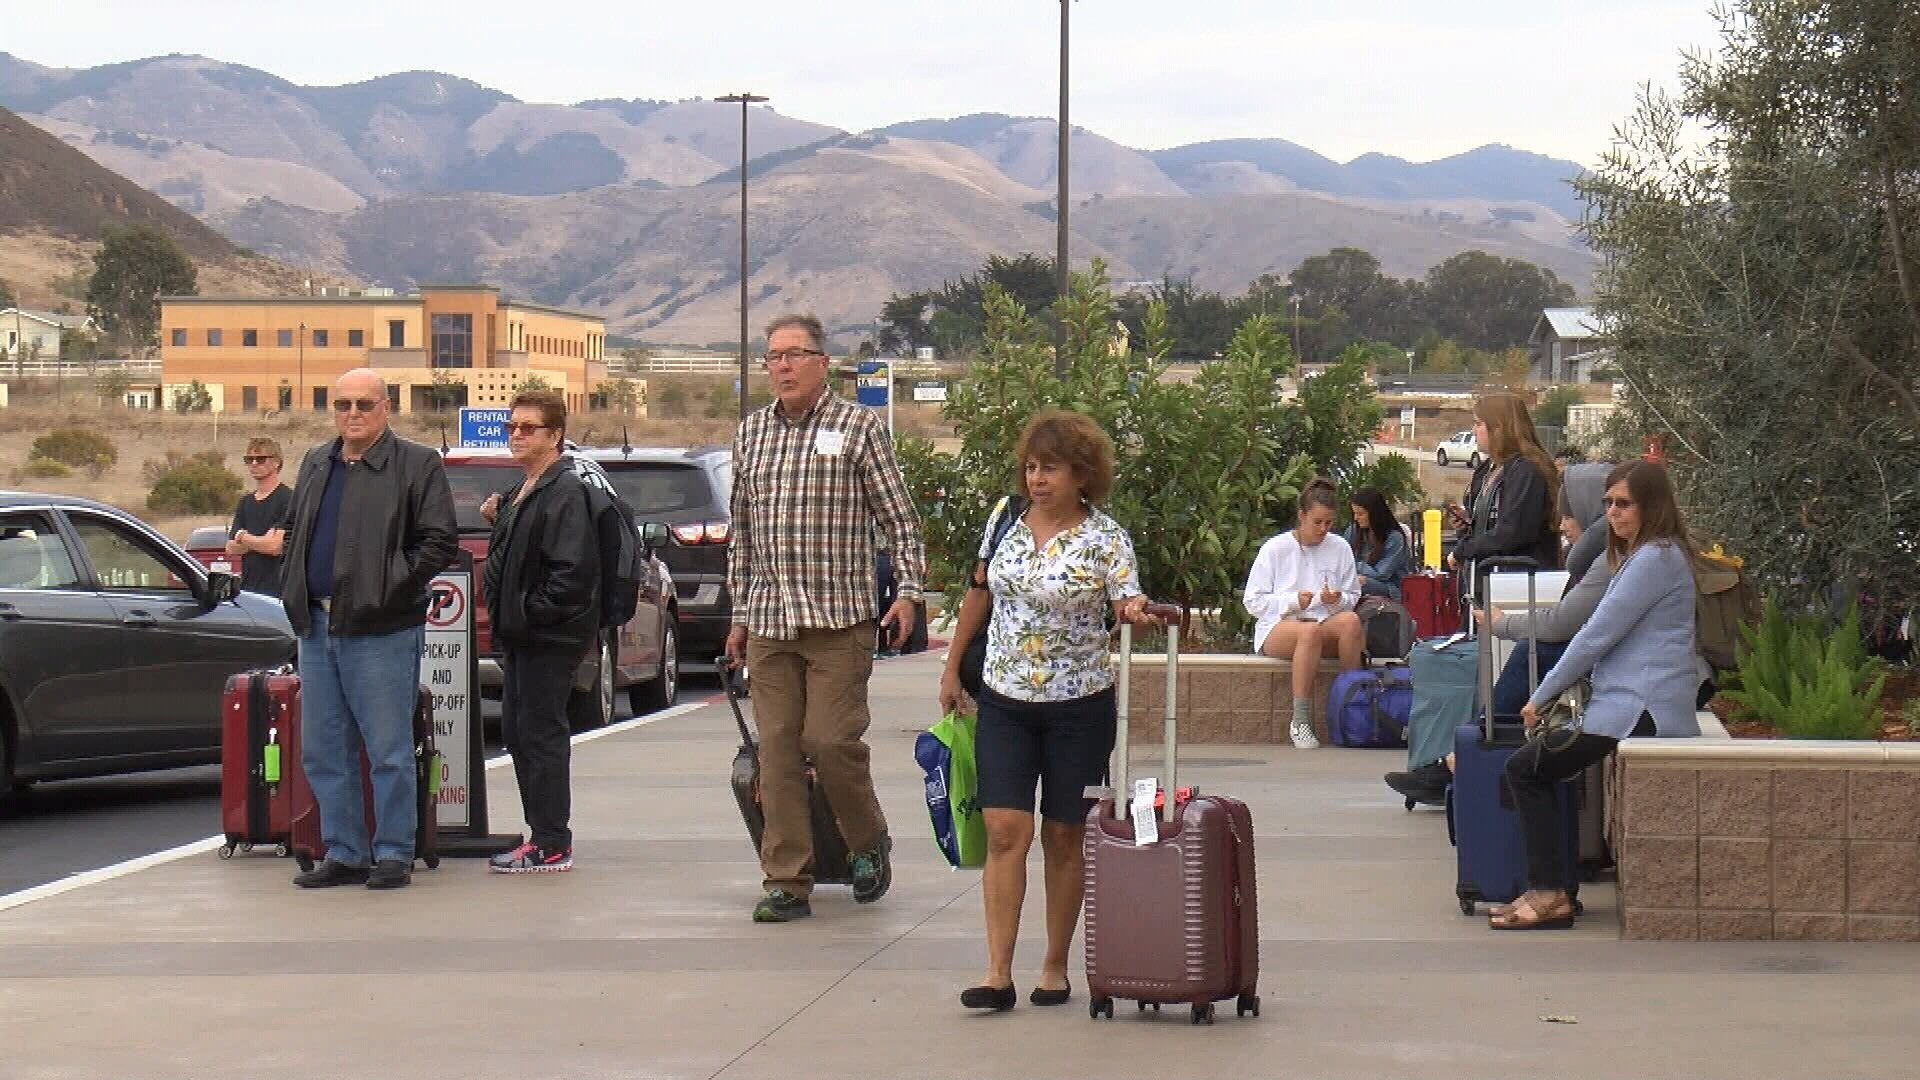 Traffic, airport crowds expected for holiday travel back home